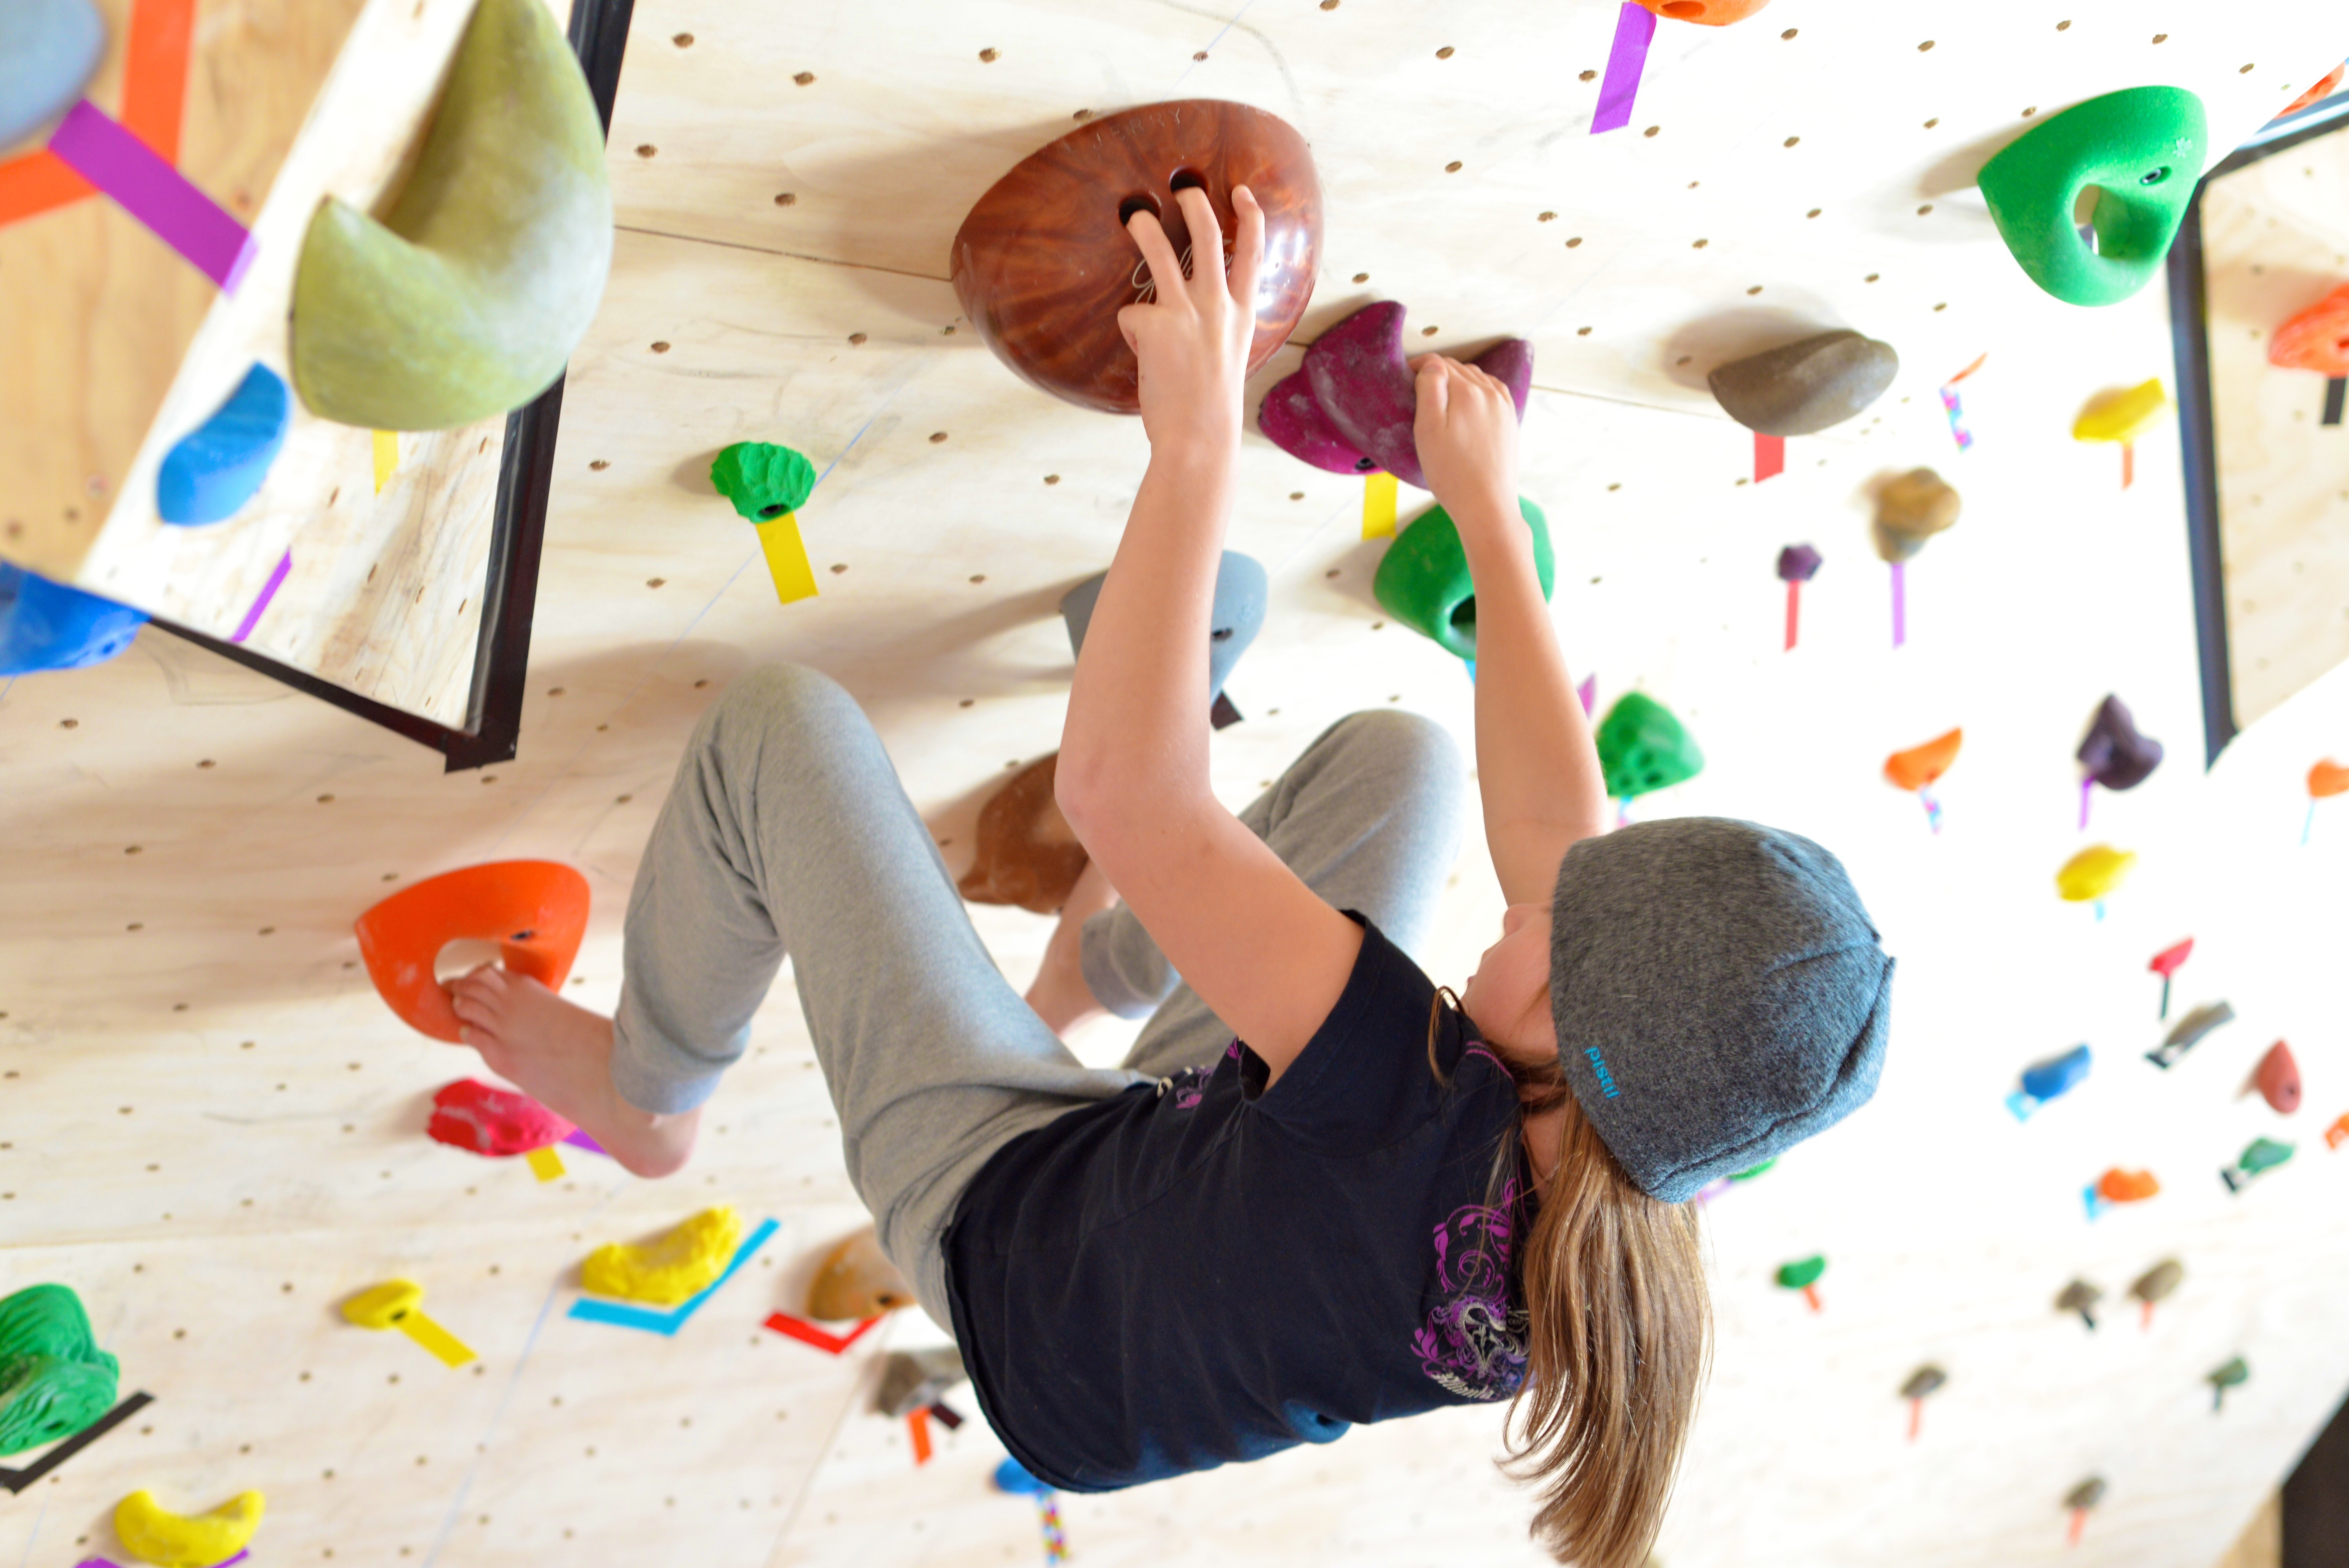 How To Make Climbing Holds Out Of Bowling Balls